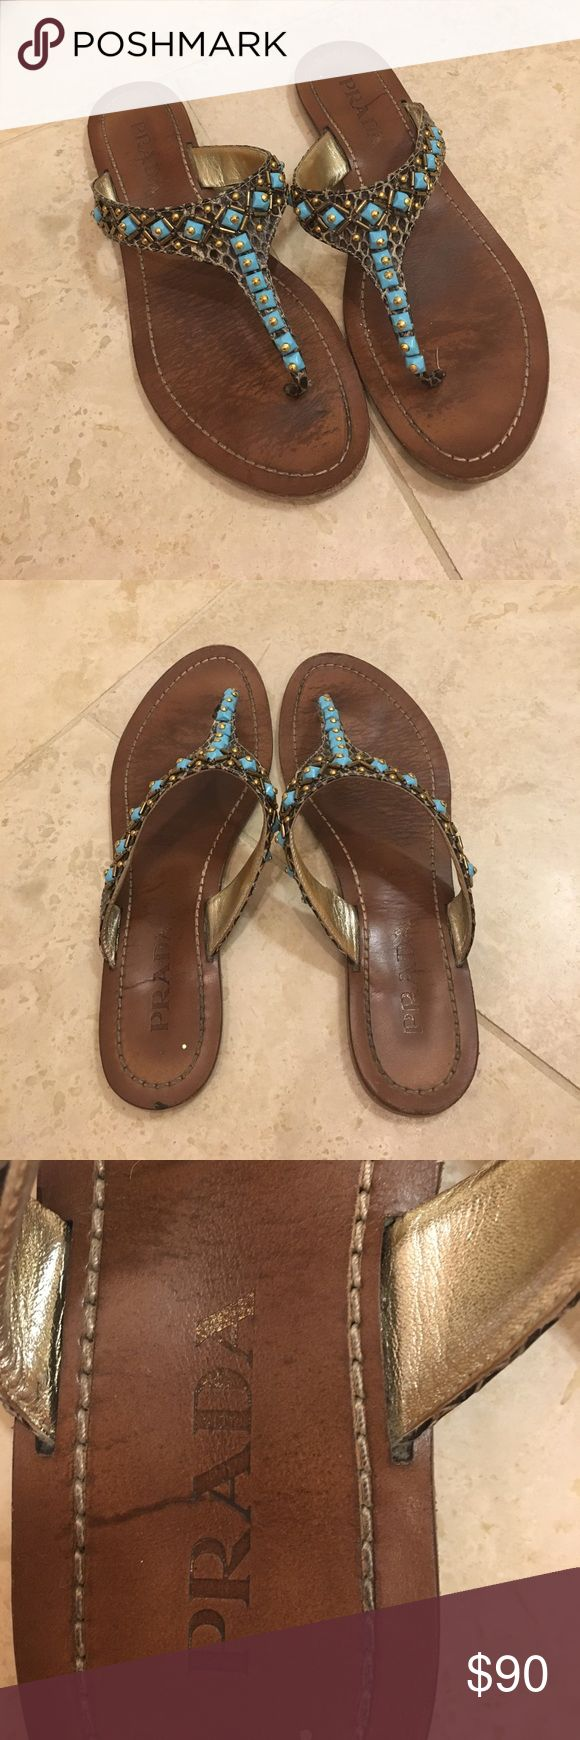 Prada Beaded Flip Flops Brown leather beaded Prada Flip flops Prada Shoes Sandals